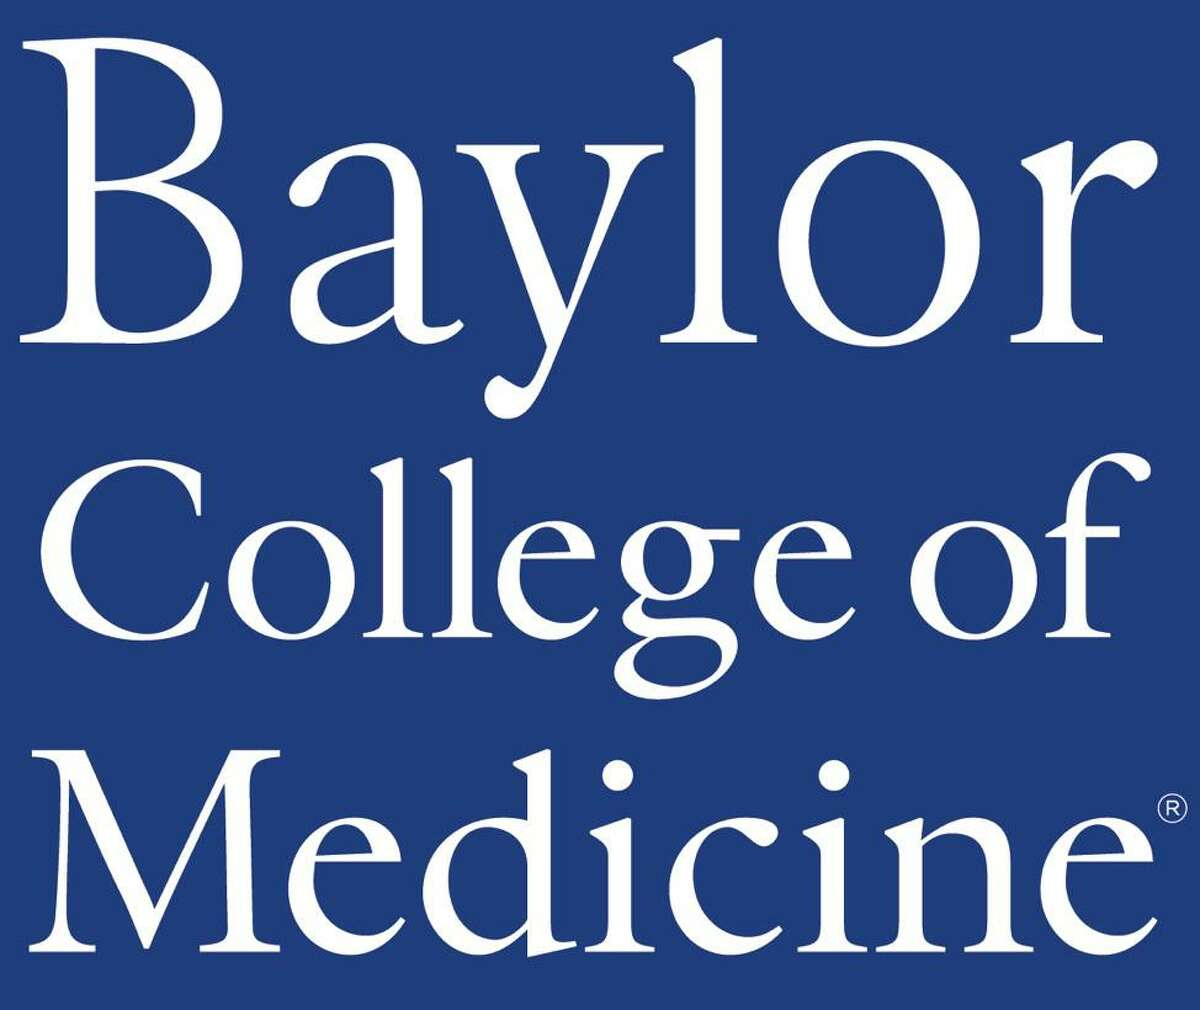 Baylor College of Medicine plans to open a regional campus in Temple in 2023 in a building currently operated by Texas A&M. A&M, some of whose medical students do their third- and fourth-year clinical rotations at the Baylor Scott & White Medical Center in Temple, is leaving Temple to enhance its presence in Dallas.